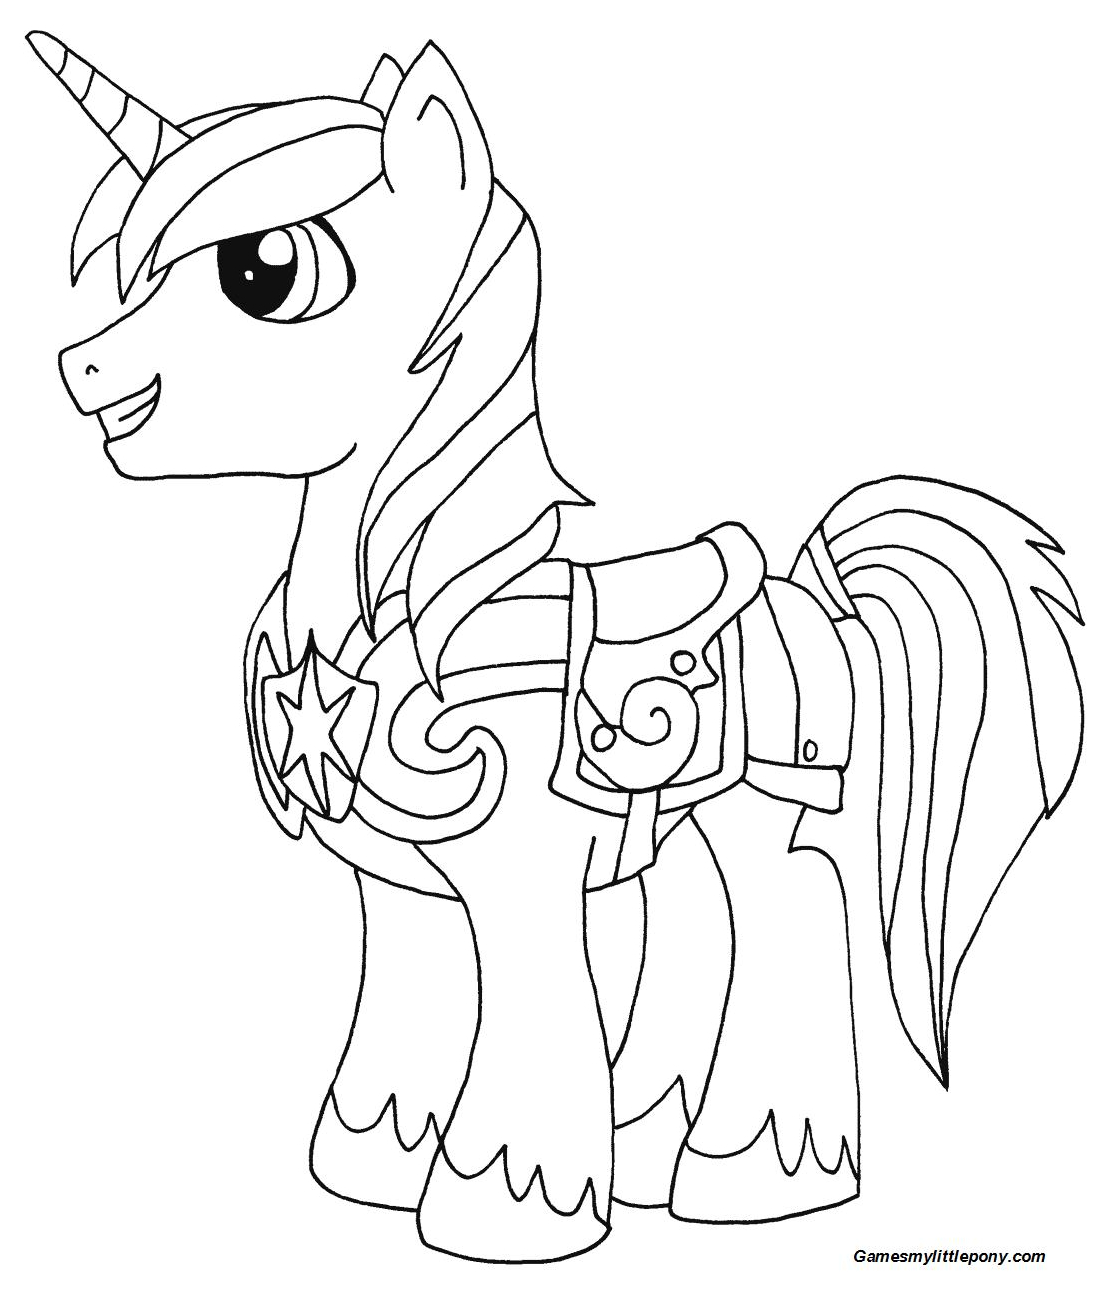 Shining Armor from My Little Pony